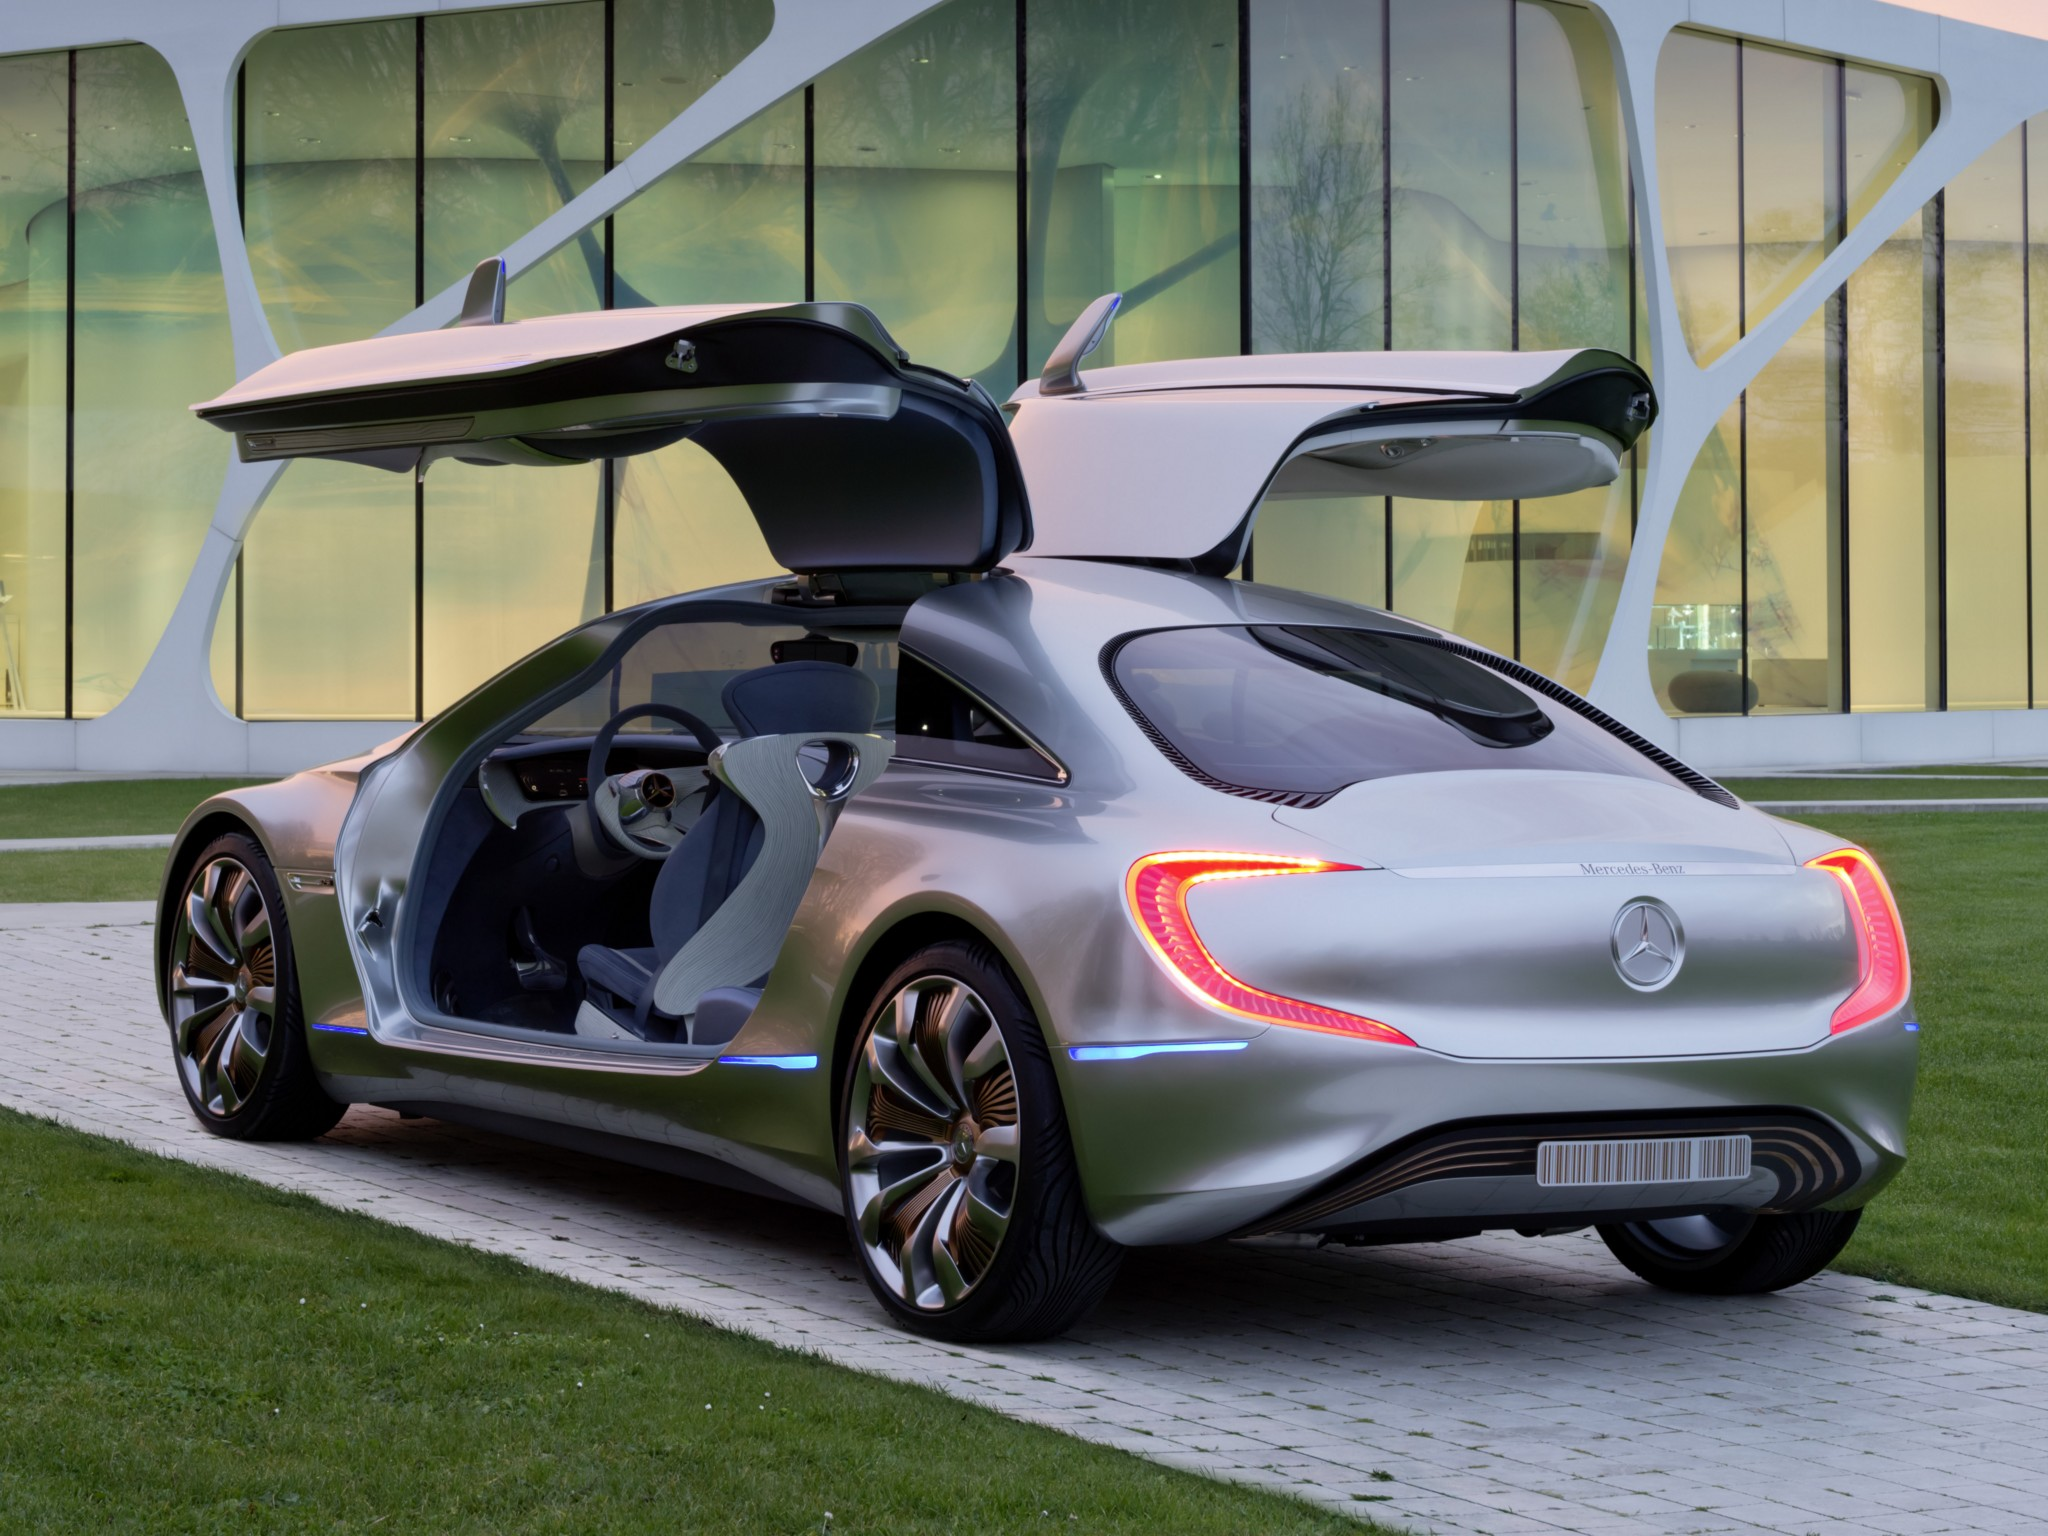 2018 mercedes benz f125 concept car photos catalog 2018 for Mercedes benz f